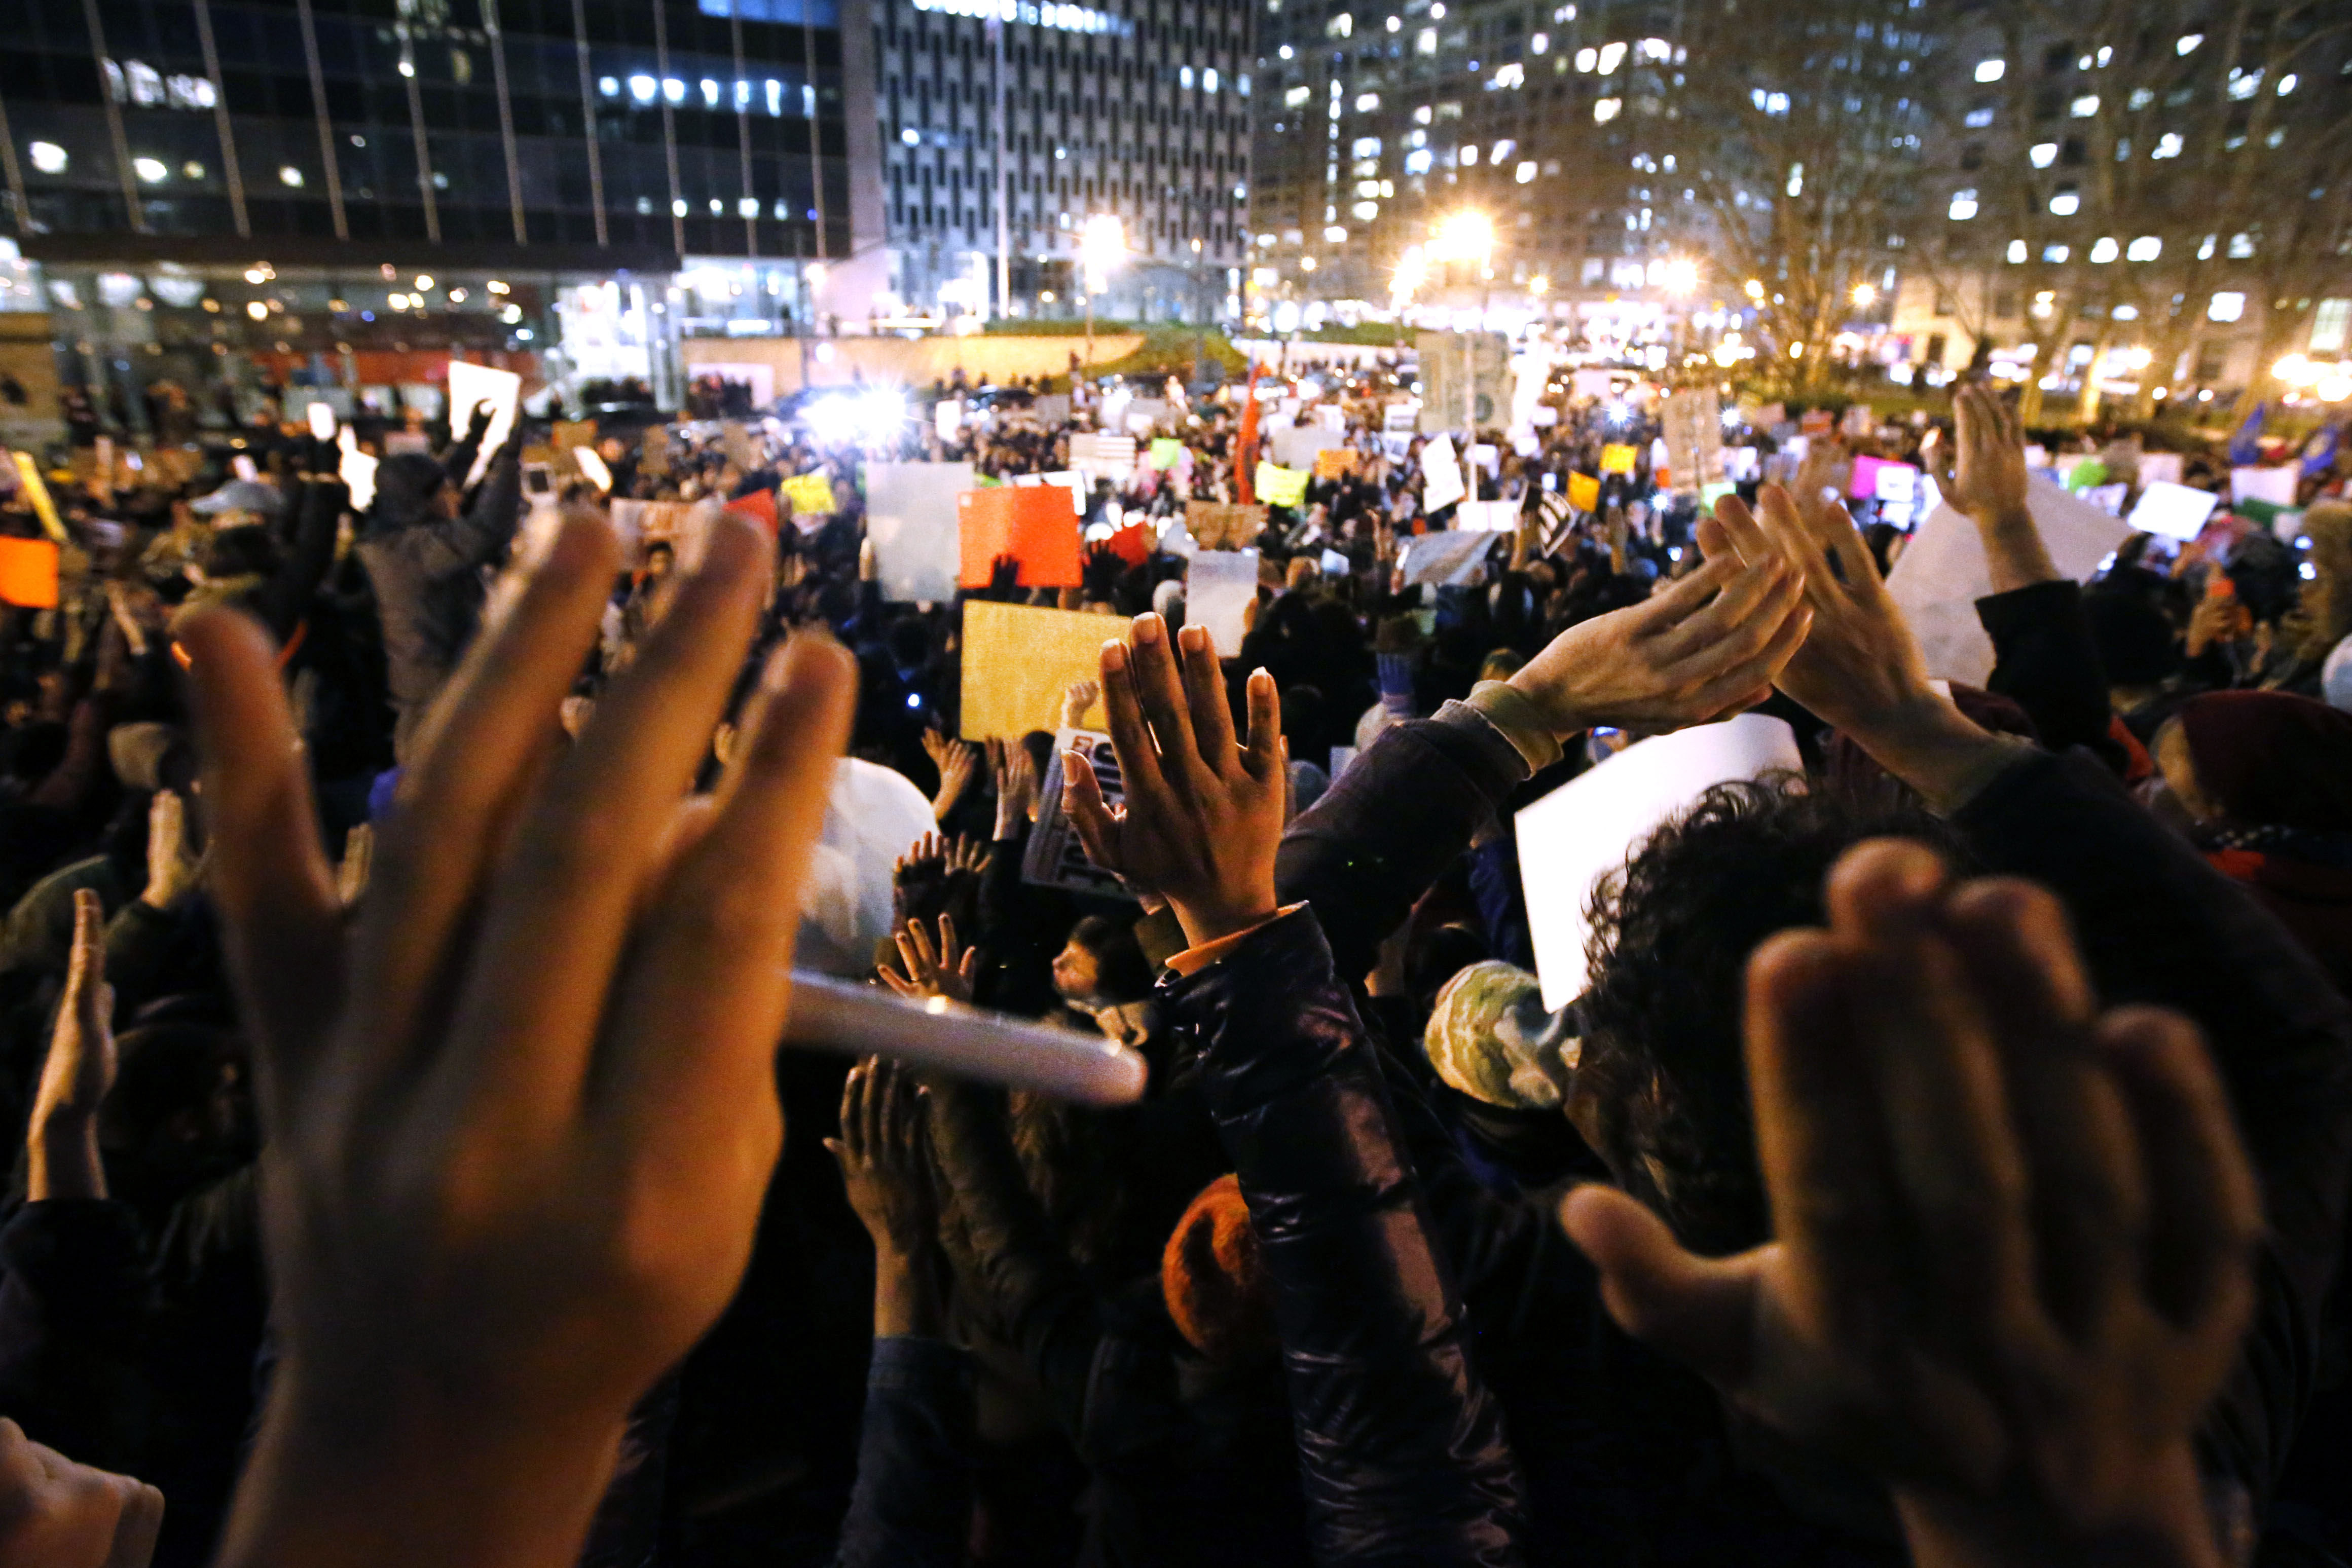 Protesters rally against a grand jury's decision not to indict the police officer involved in the death of Eric Garner in Foley Square, Thursday, Dec. 4, 2014, in New York. A grand jury cleared a white New York City police officer Wednesday in the videotaped chokehold death of Garner, an unarmed black man, who had been stopped on suspicion of selling loose, untaxed cigarettes.  (AP Photo/Jason DeCrow)